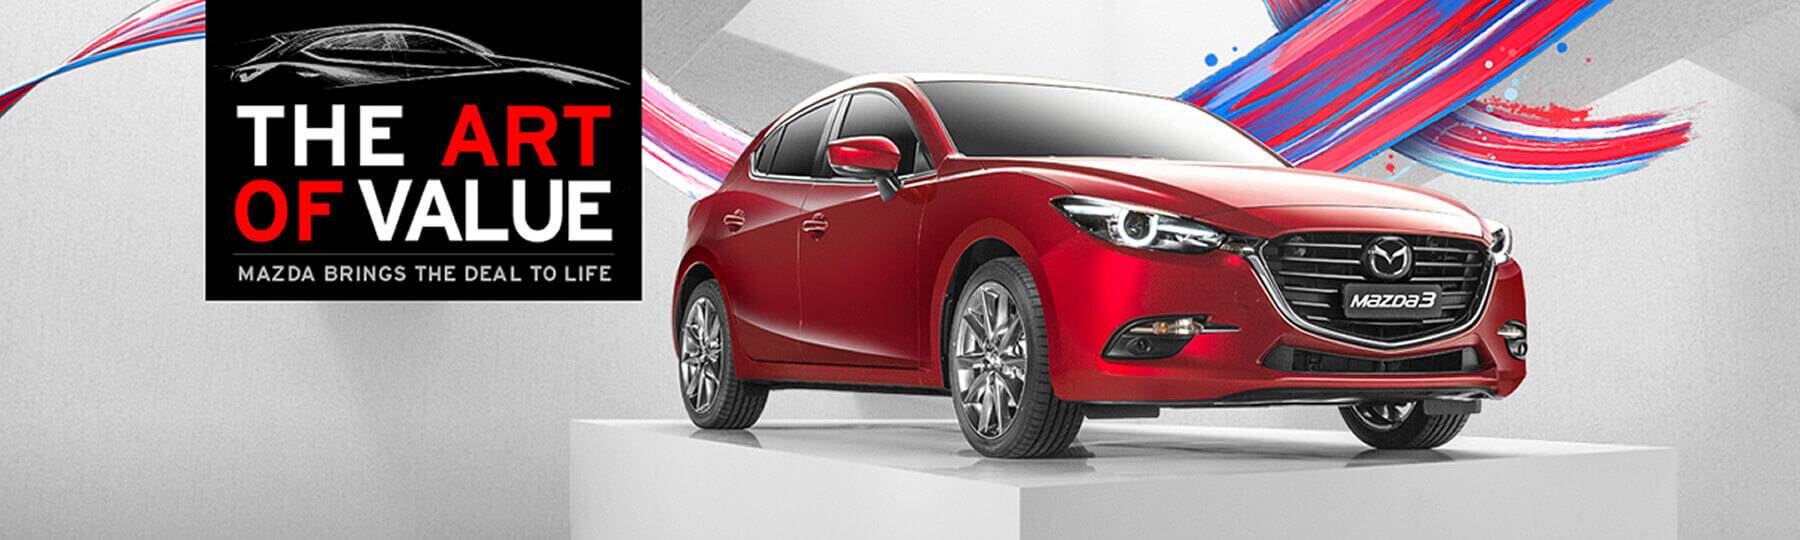 Mazda Factory Offer July